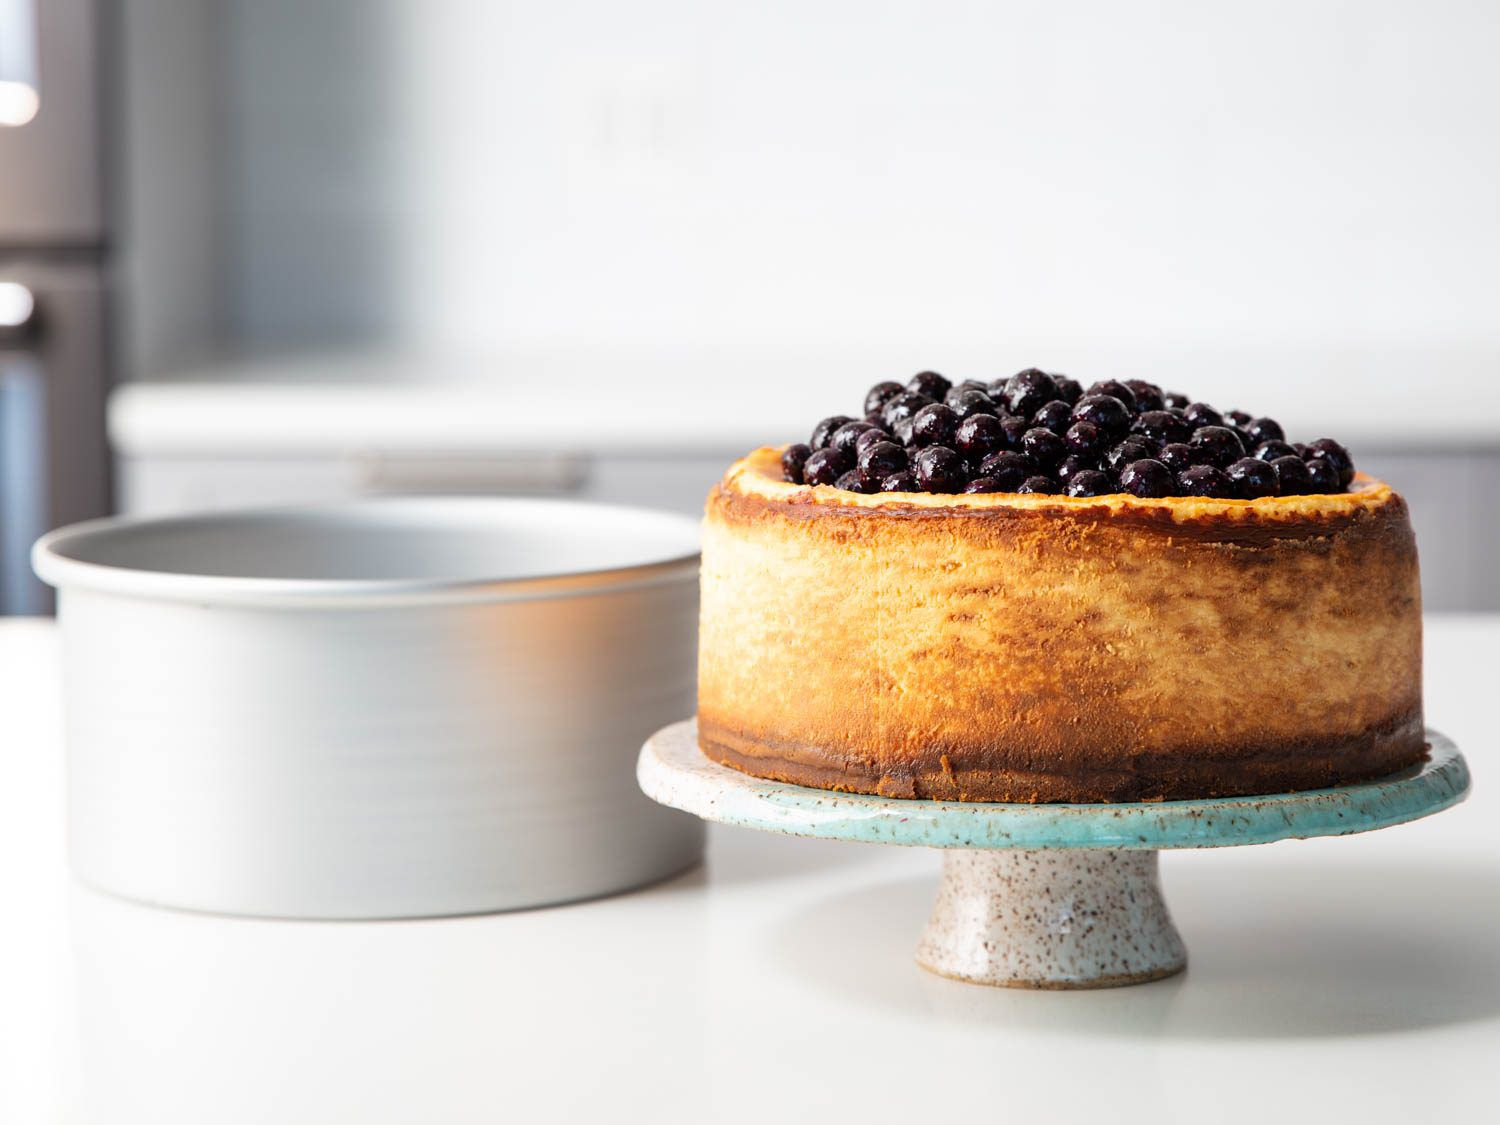 a New York style cheesecake on a pedestal, topped with blueberries